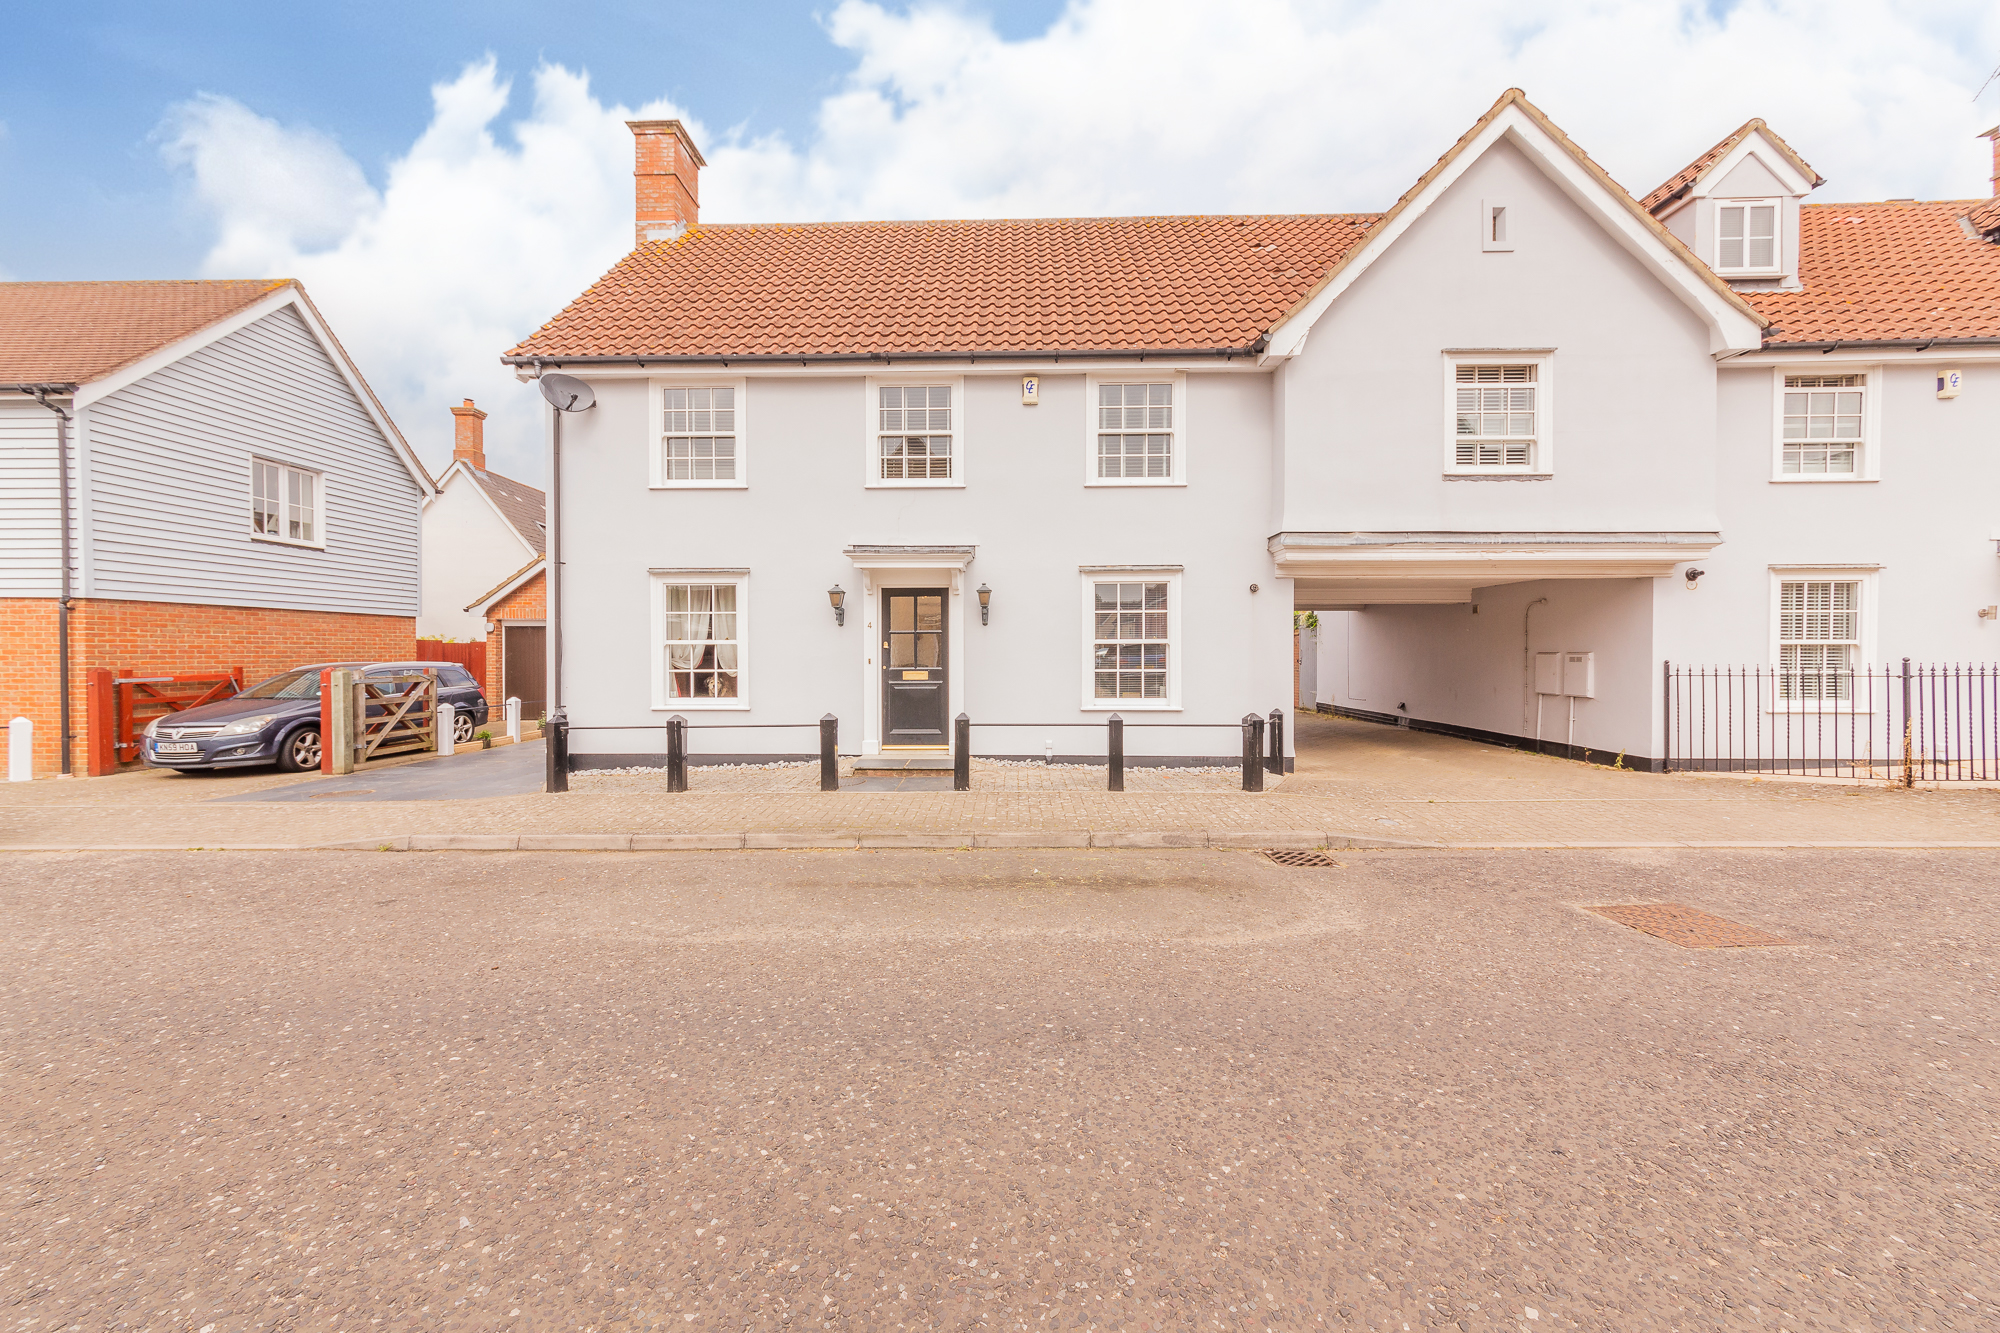 Joscelyne Chase Property Consultants in Essex